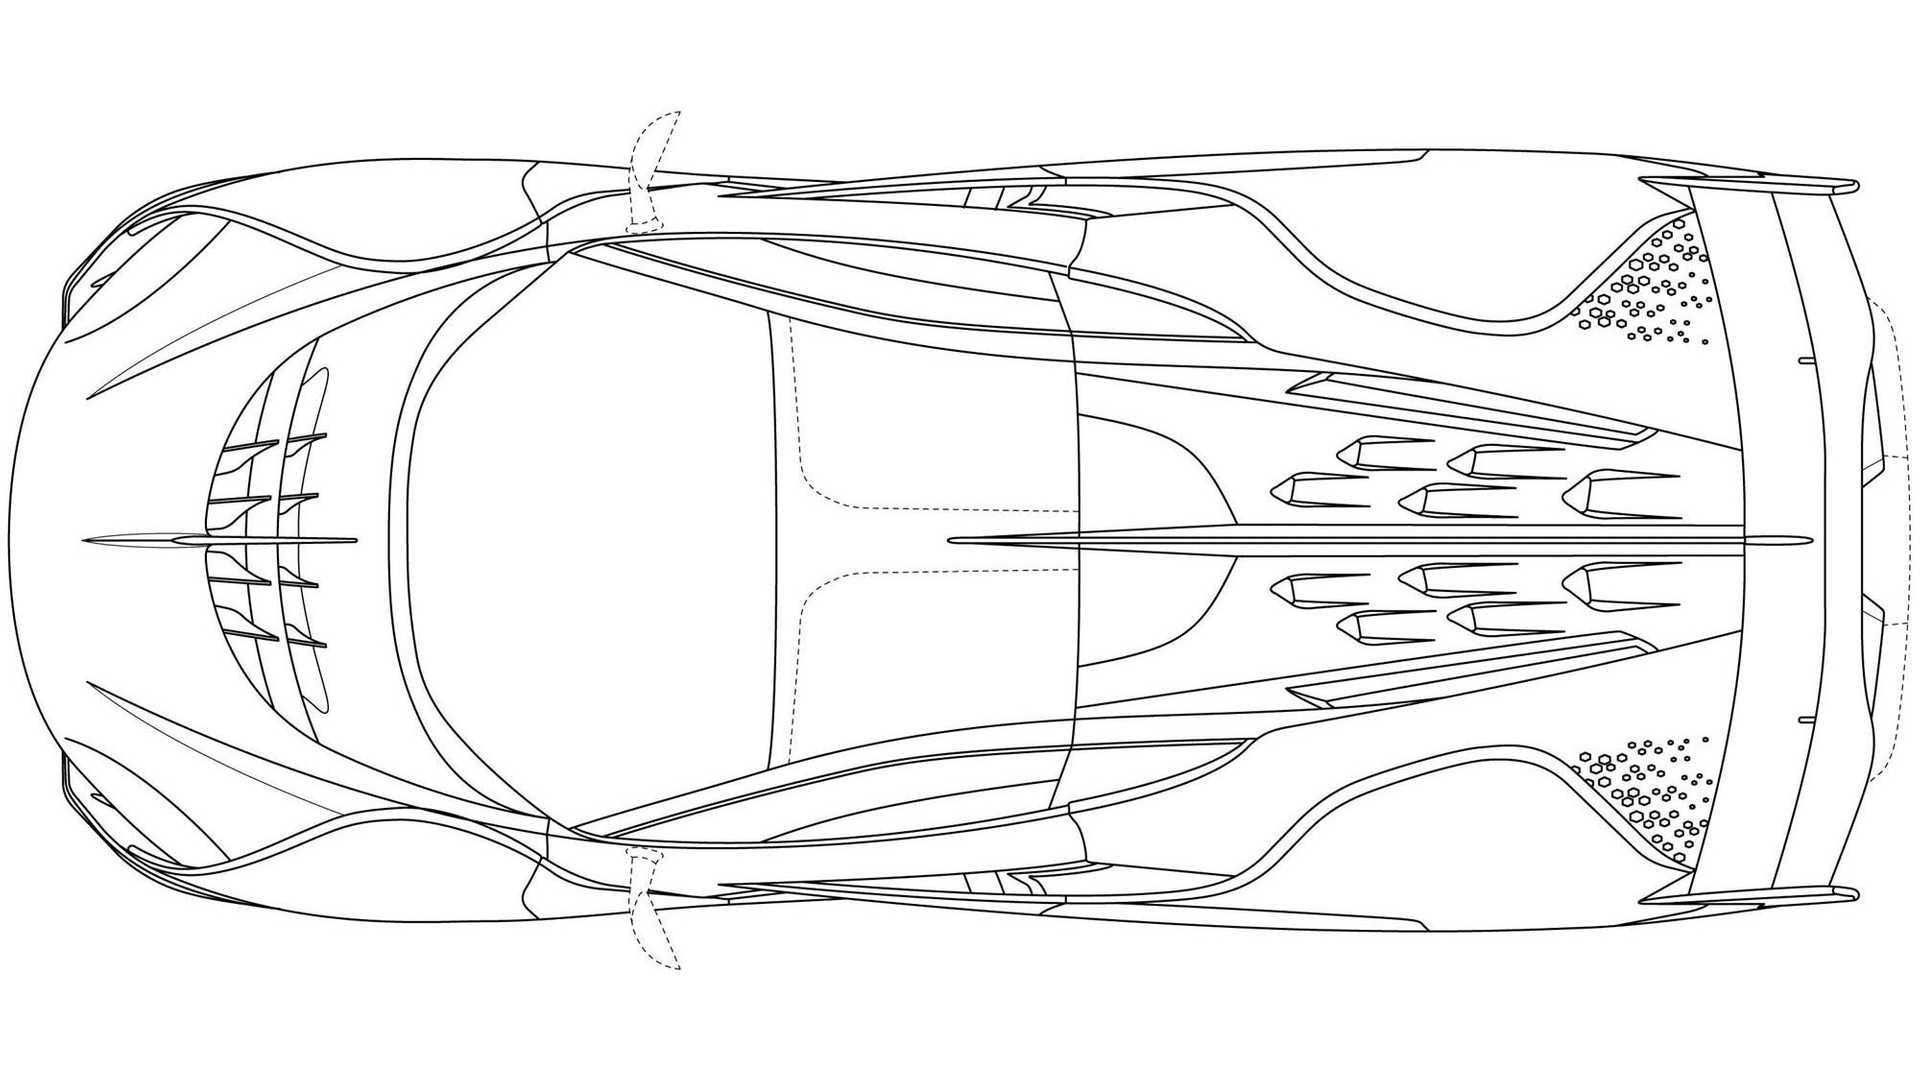 mclaren-ultimate-series-design-trademark-roof